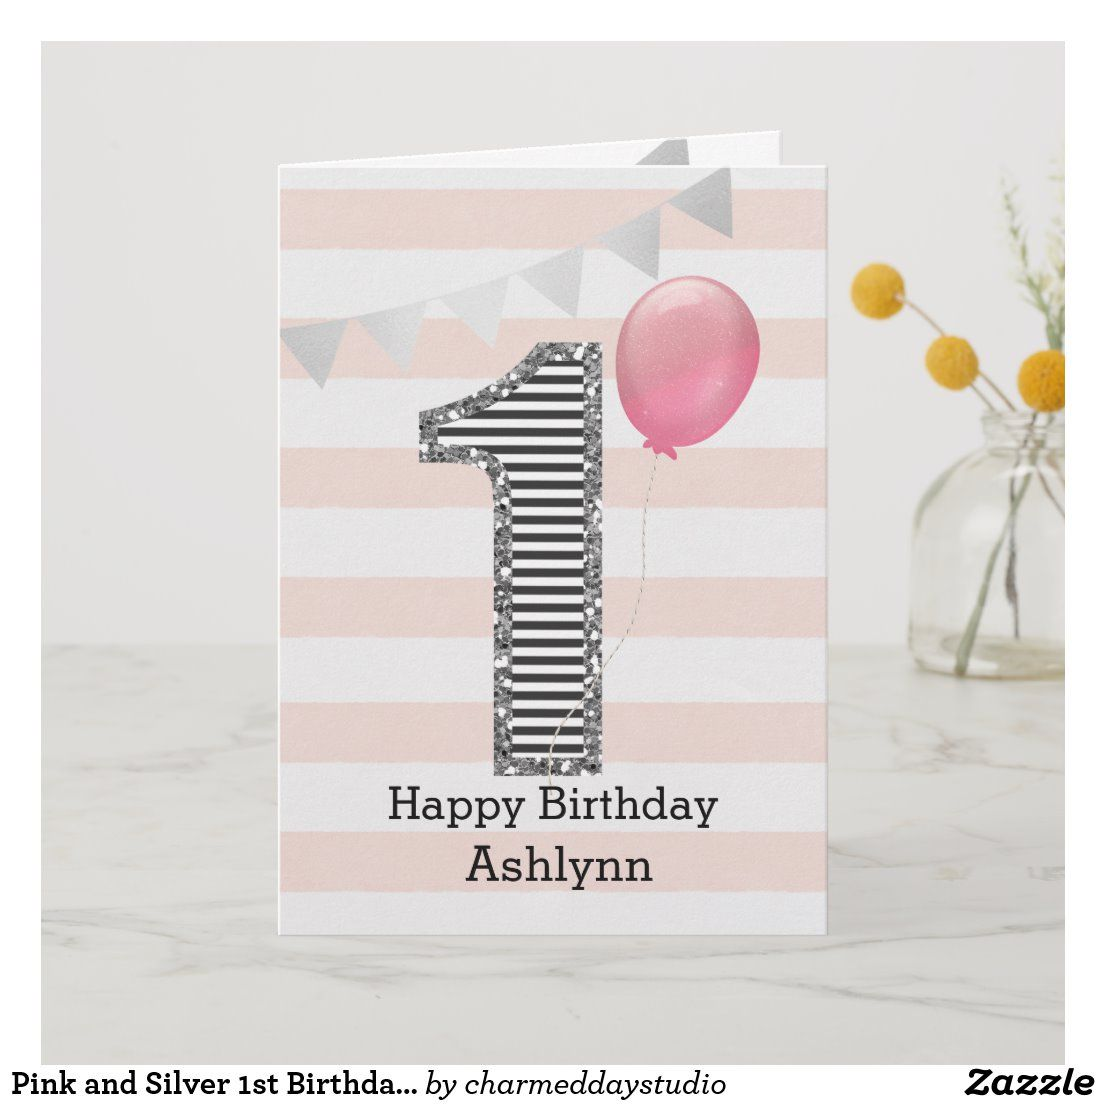 Pink And Silver 1st Birthday Girl Card Zazzle Com In 2021 First Birthday Cards Card Making Birthday 1st Birthday Cards